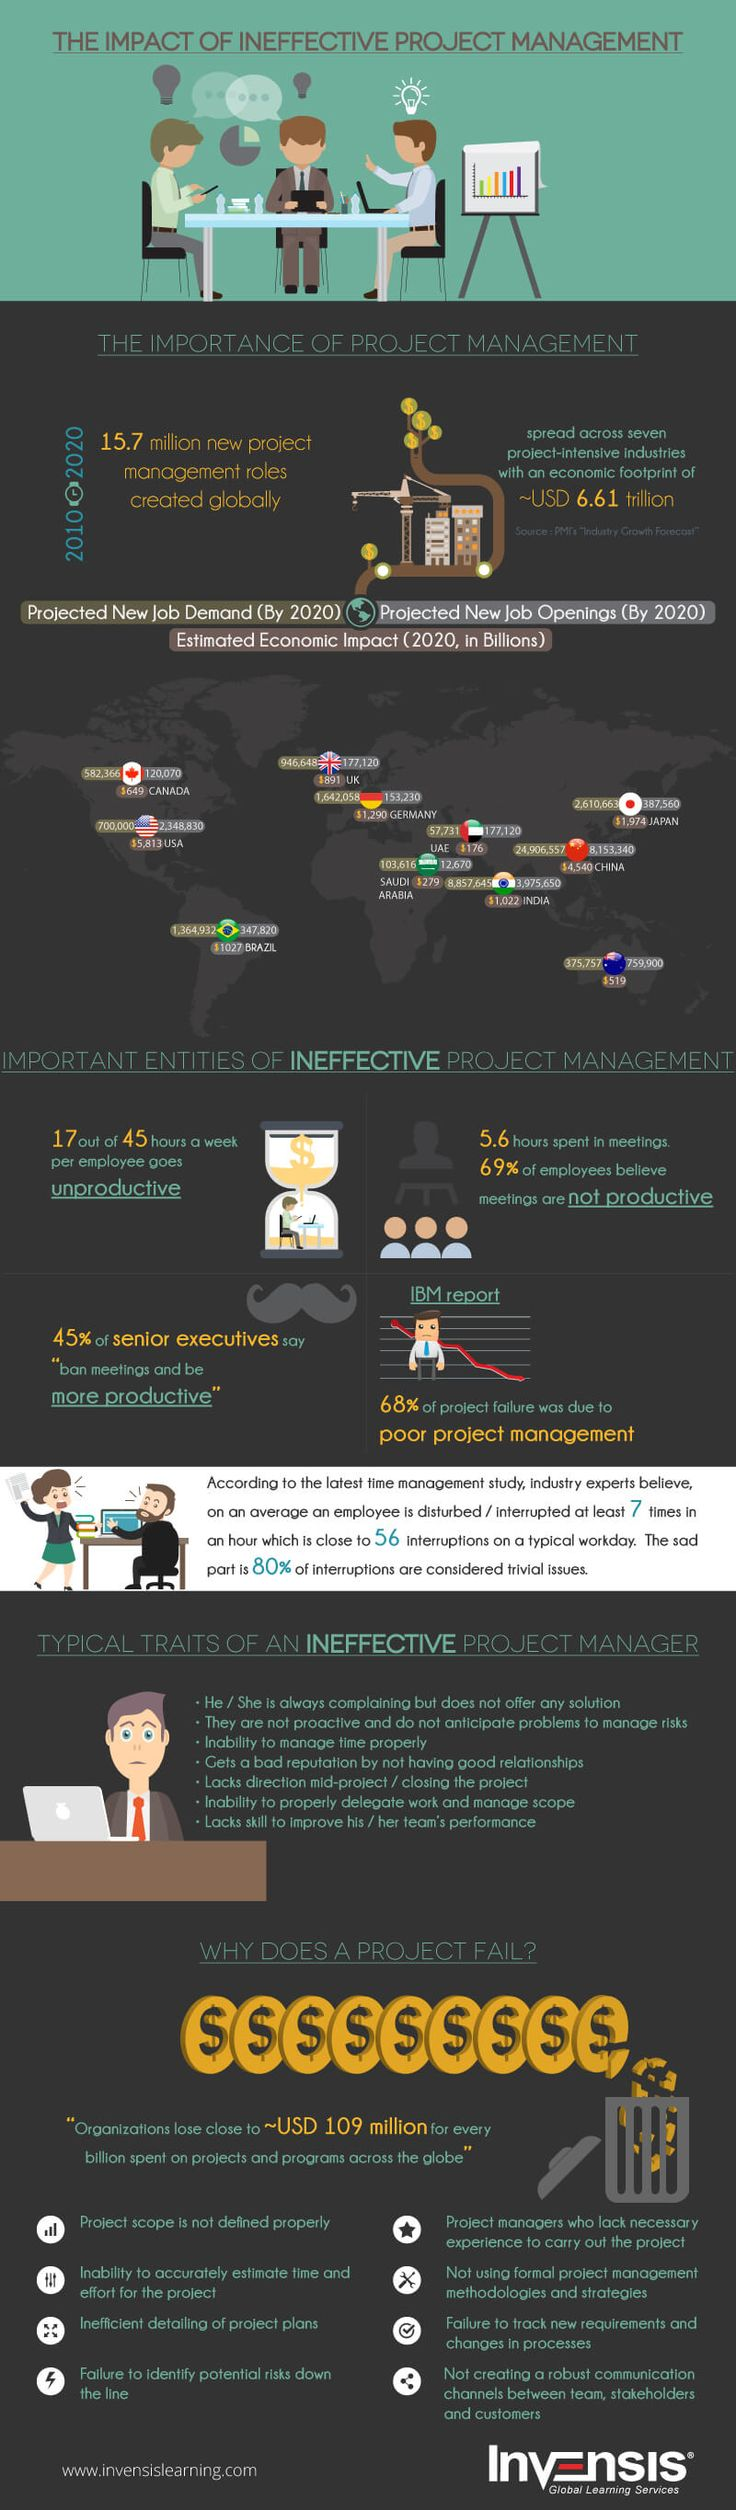 The Impact of Ineffective Project Management Infographic - http://elearninginfographics.com/the-impact-of-ineffective-project-management/